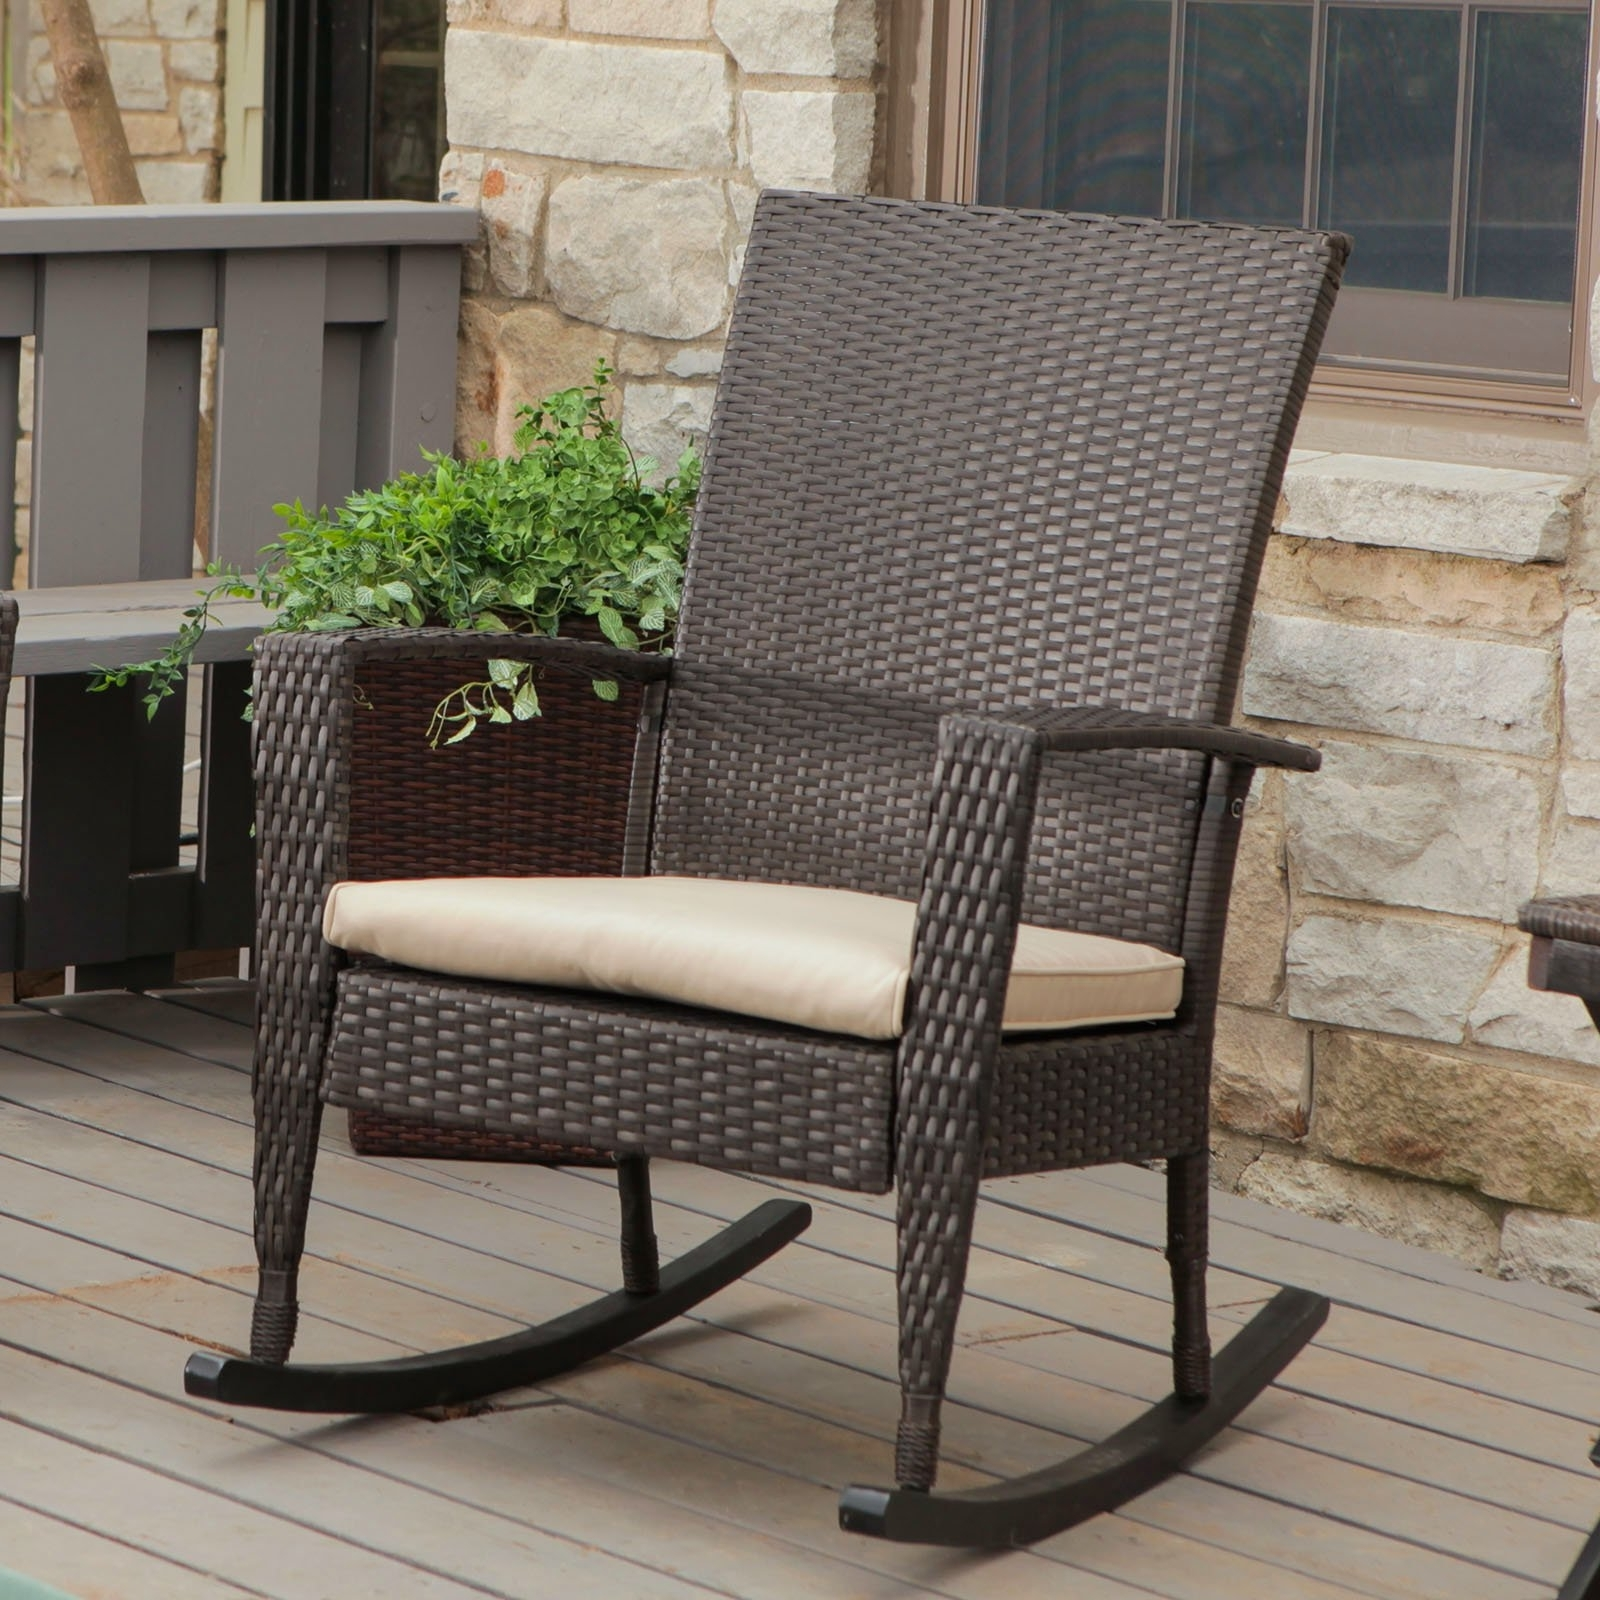 Most Recent Oversized Patio Rocking Chairs Intended For A Guide To Find The Right Outdoor Rocking Chair For Your House (View 8 of 15)